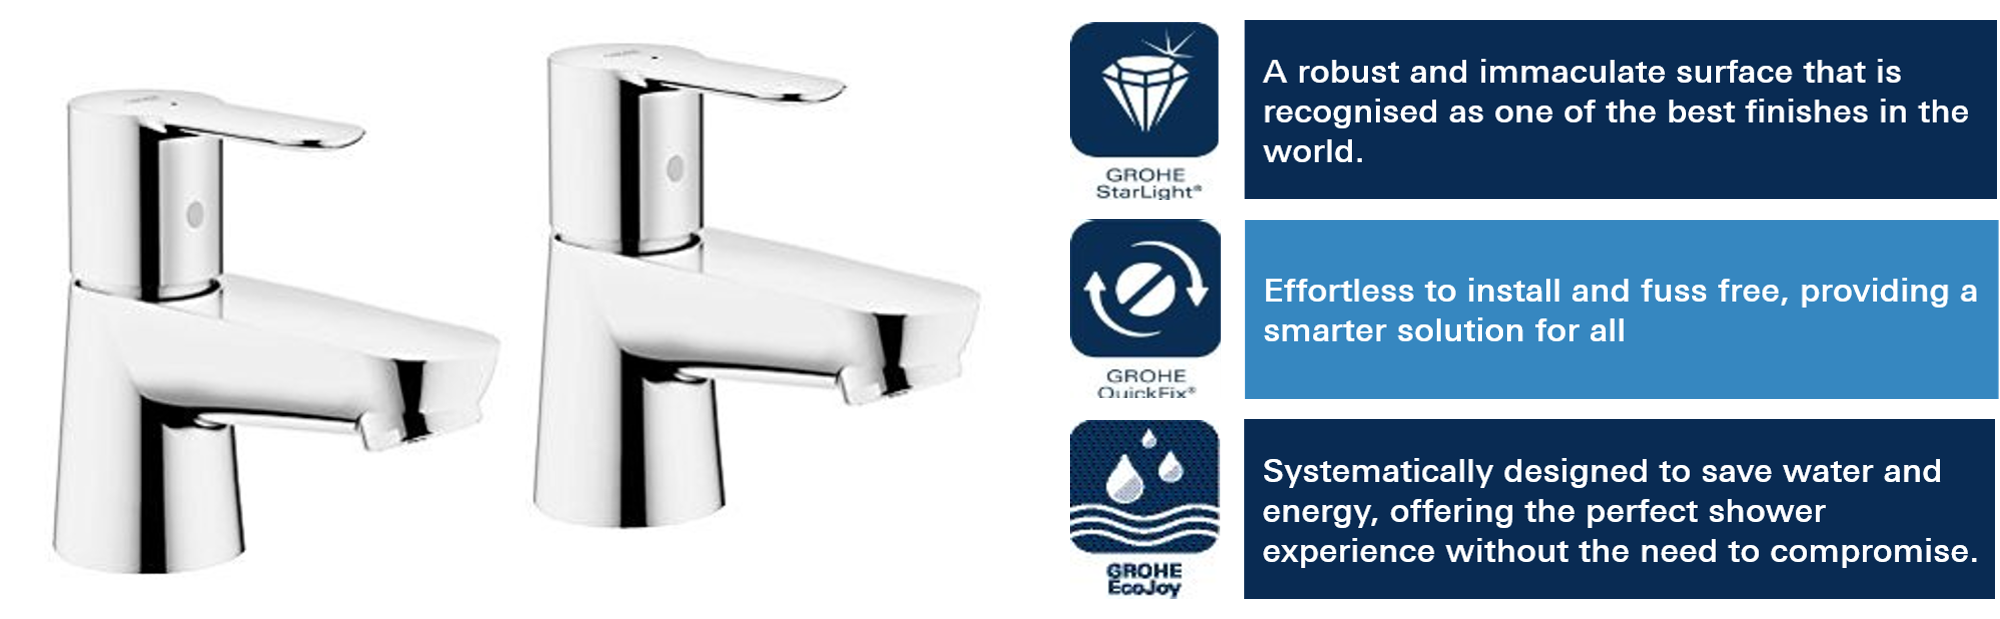 GROHE 23498000 | Get Basin Mixer Tap - chrome: Amazon.co.uk: DIY & Tools